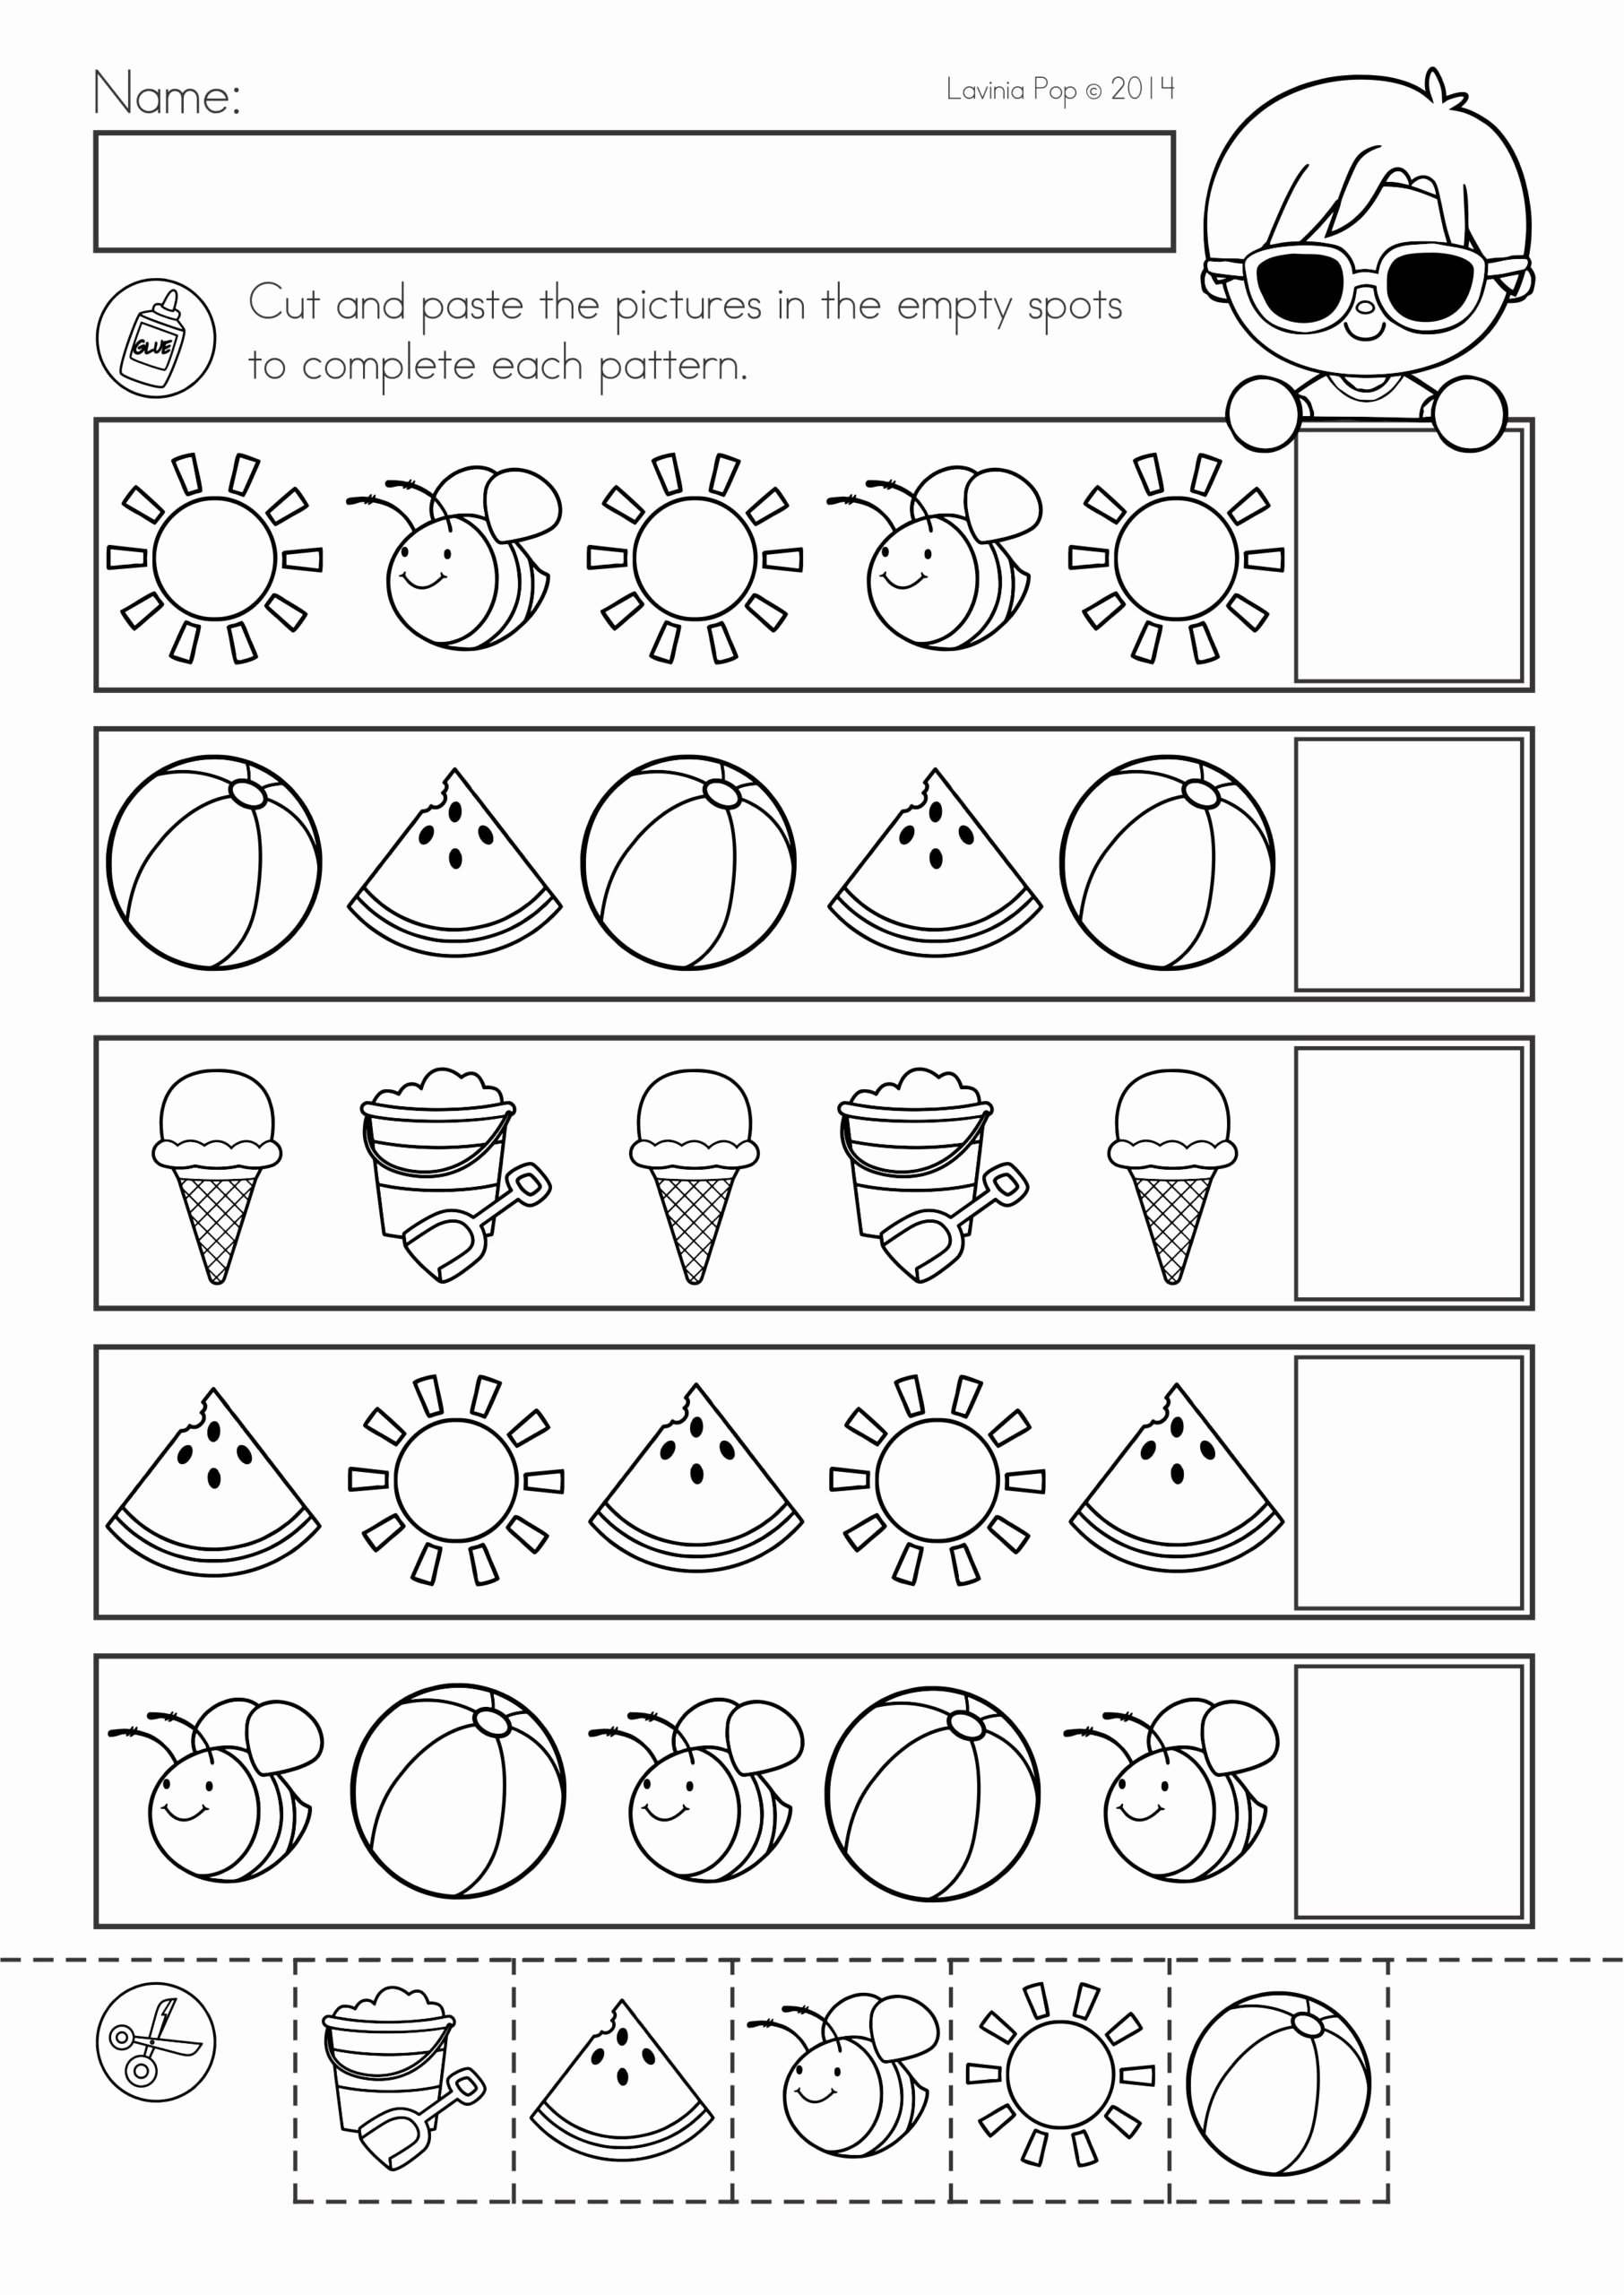 Free Printable Worksheets for Preschoolers Inspirational Math Worksheet Free Printable Worksheets for Preschoolers